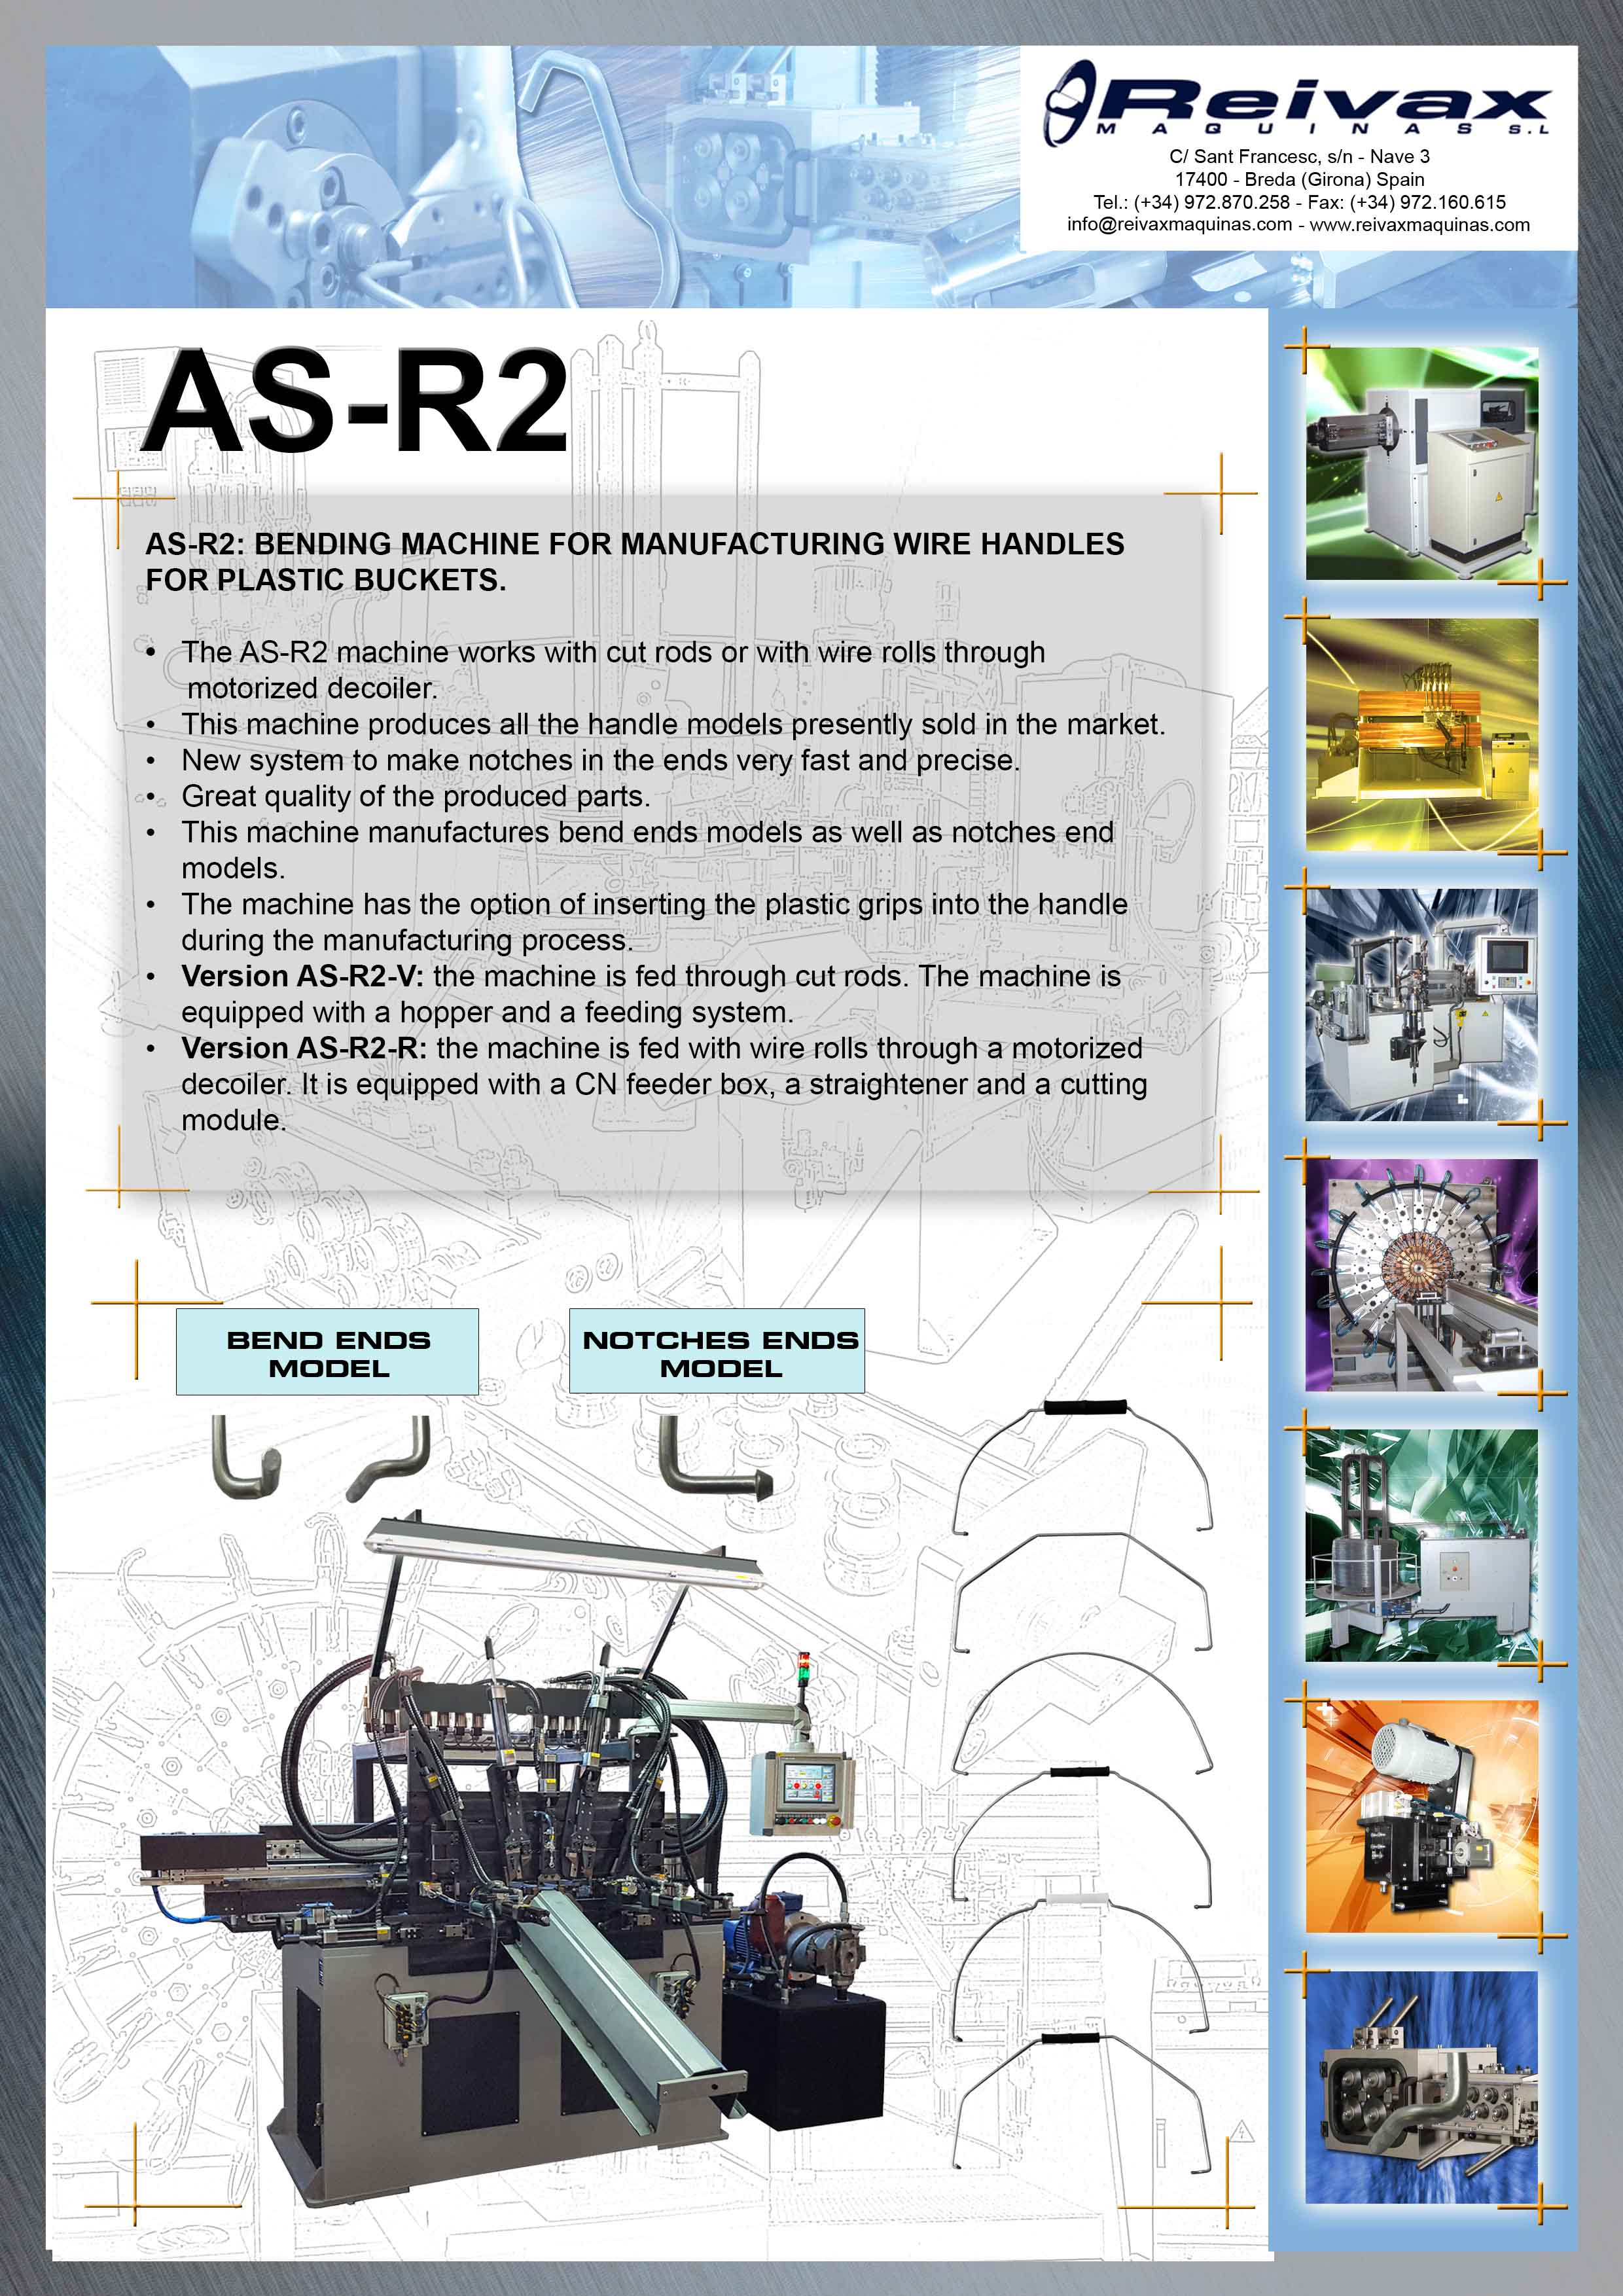 ReivaxMaquinas: Technical Details AS-R2 Machine for manufacturing wire handles for buckets.